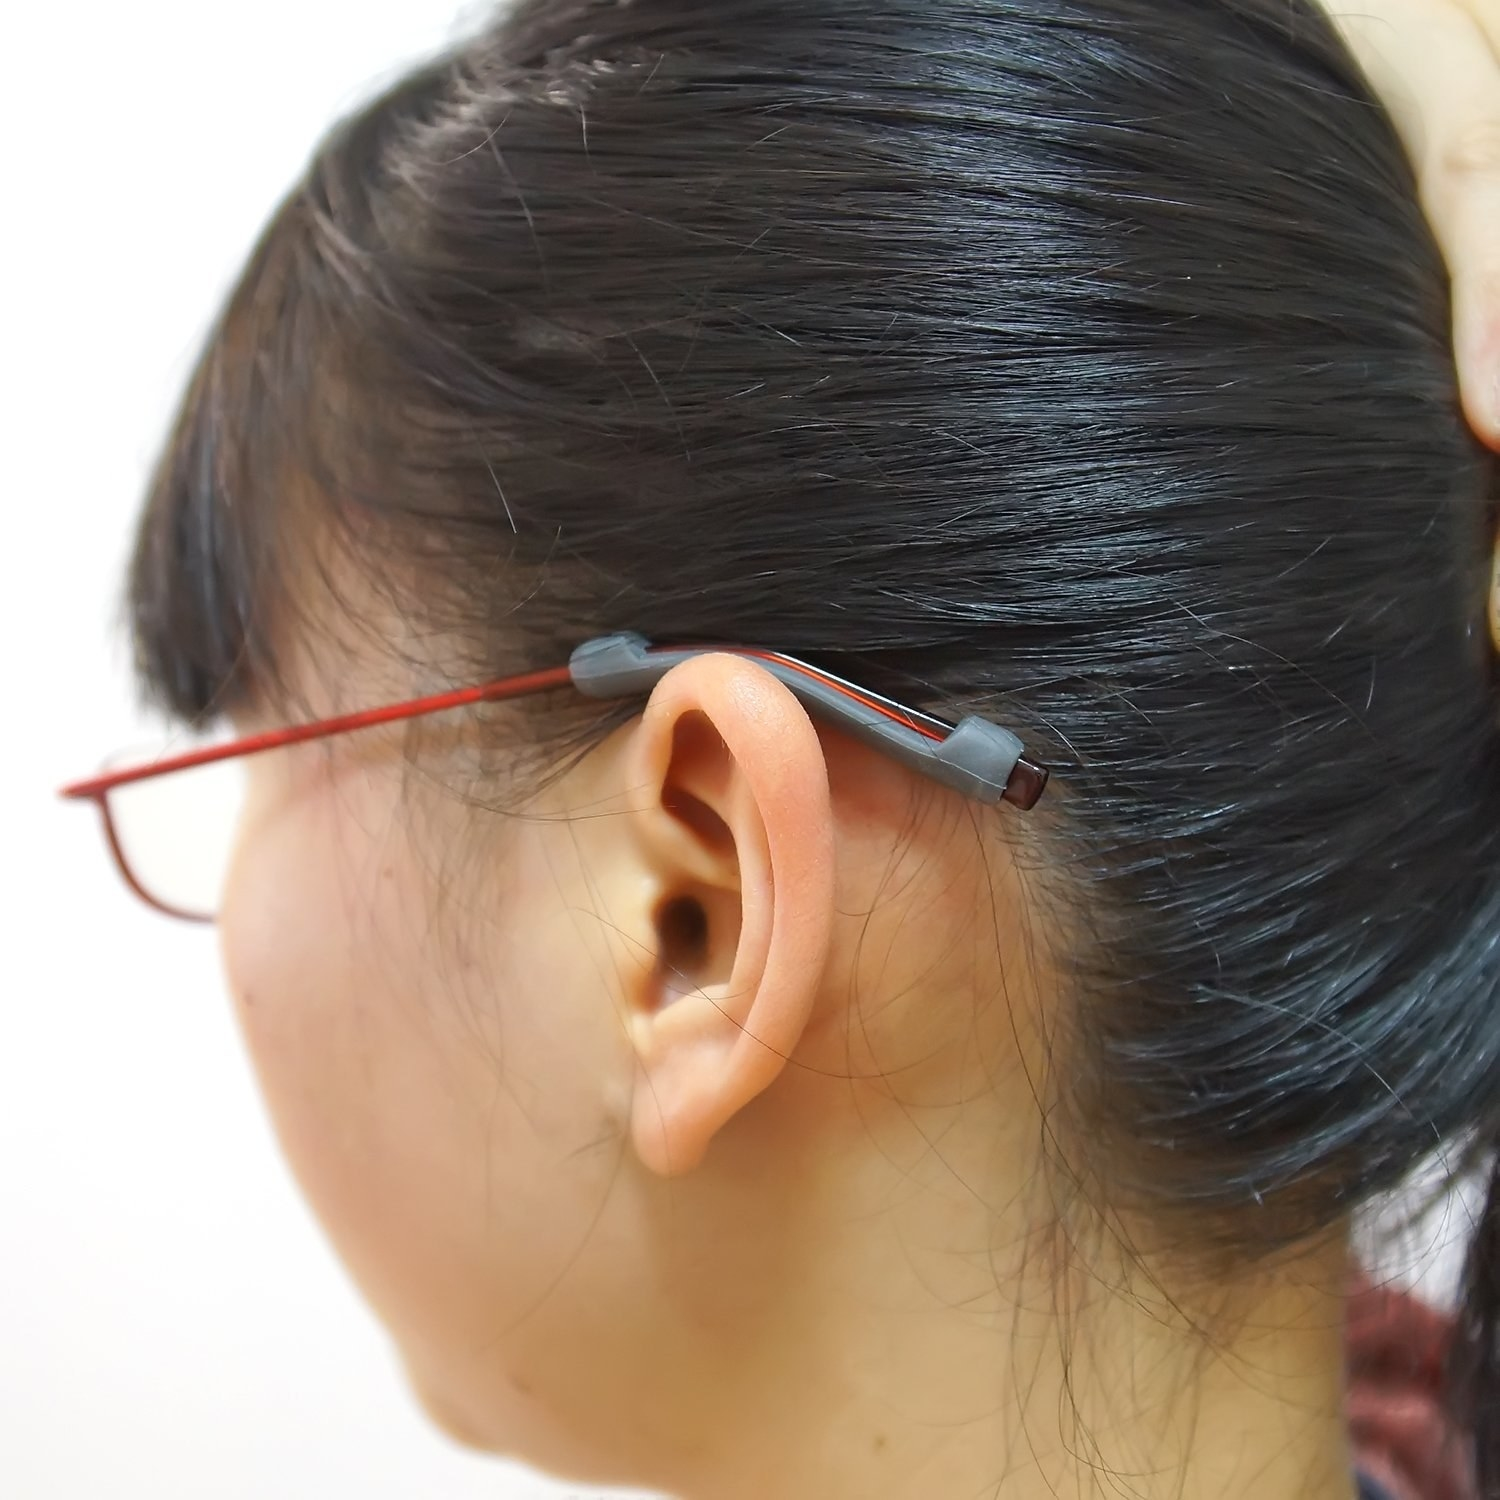 Woman wearing glasses with silicone grips